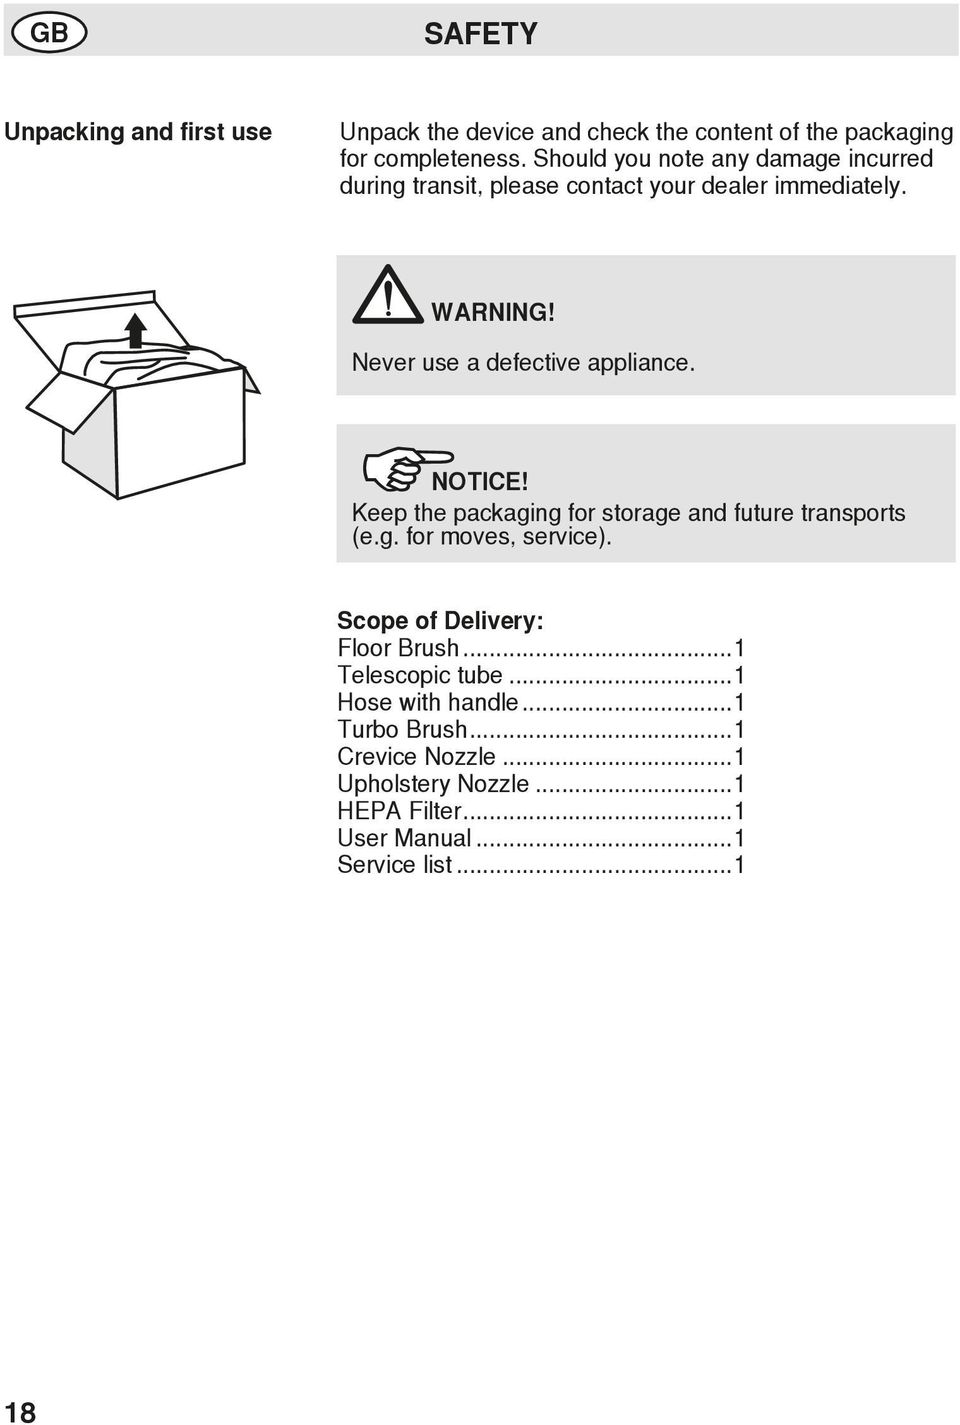 Never use a defective appliance. NOTICE! Keep the packaging for storage and future transports (e.g. for moves, service).